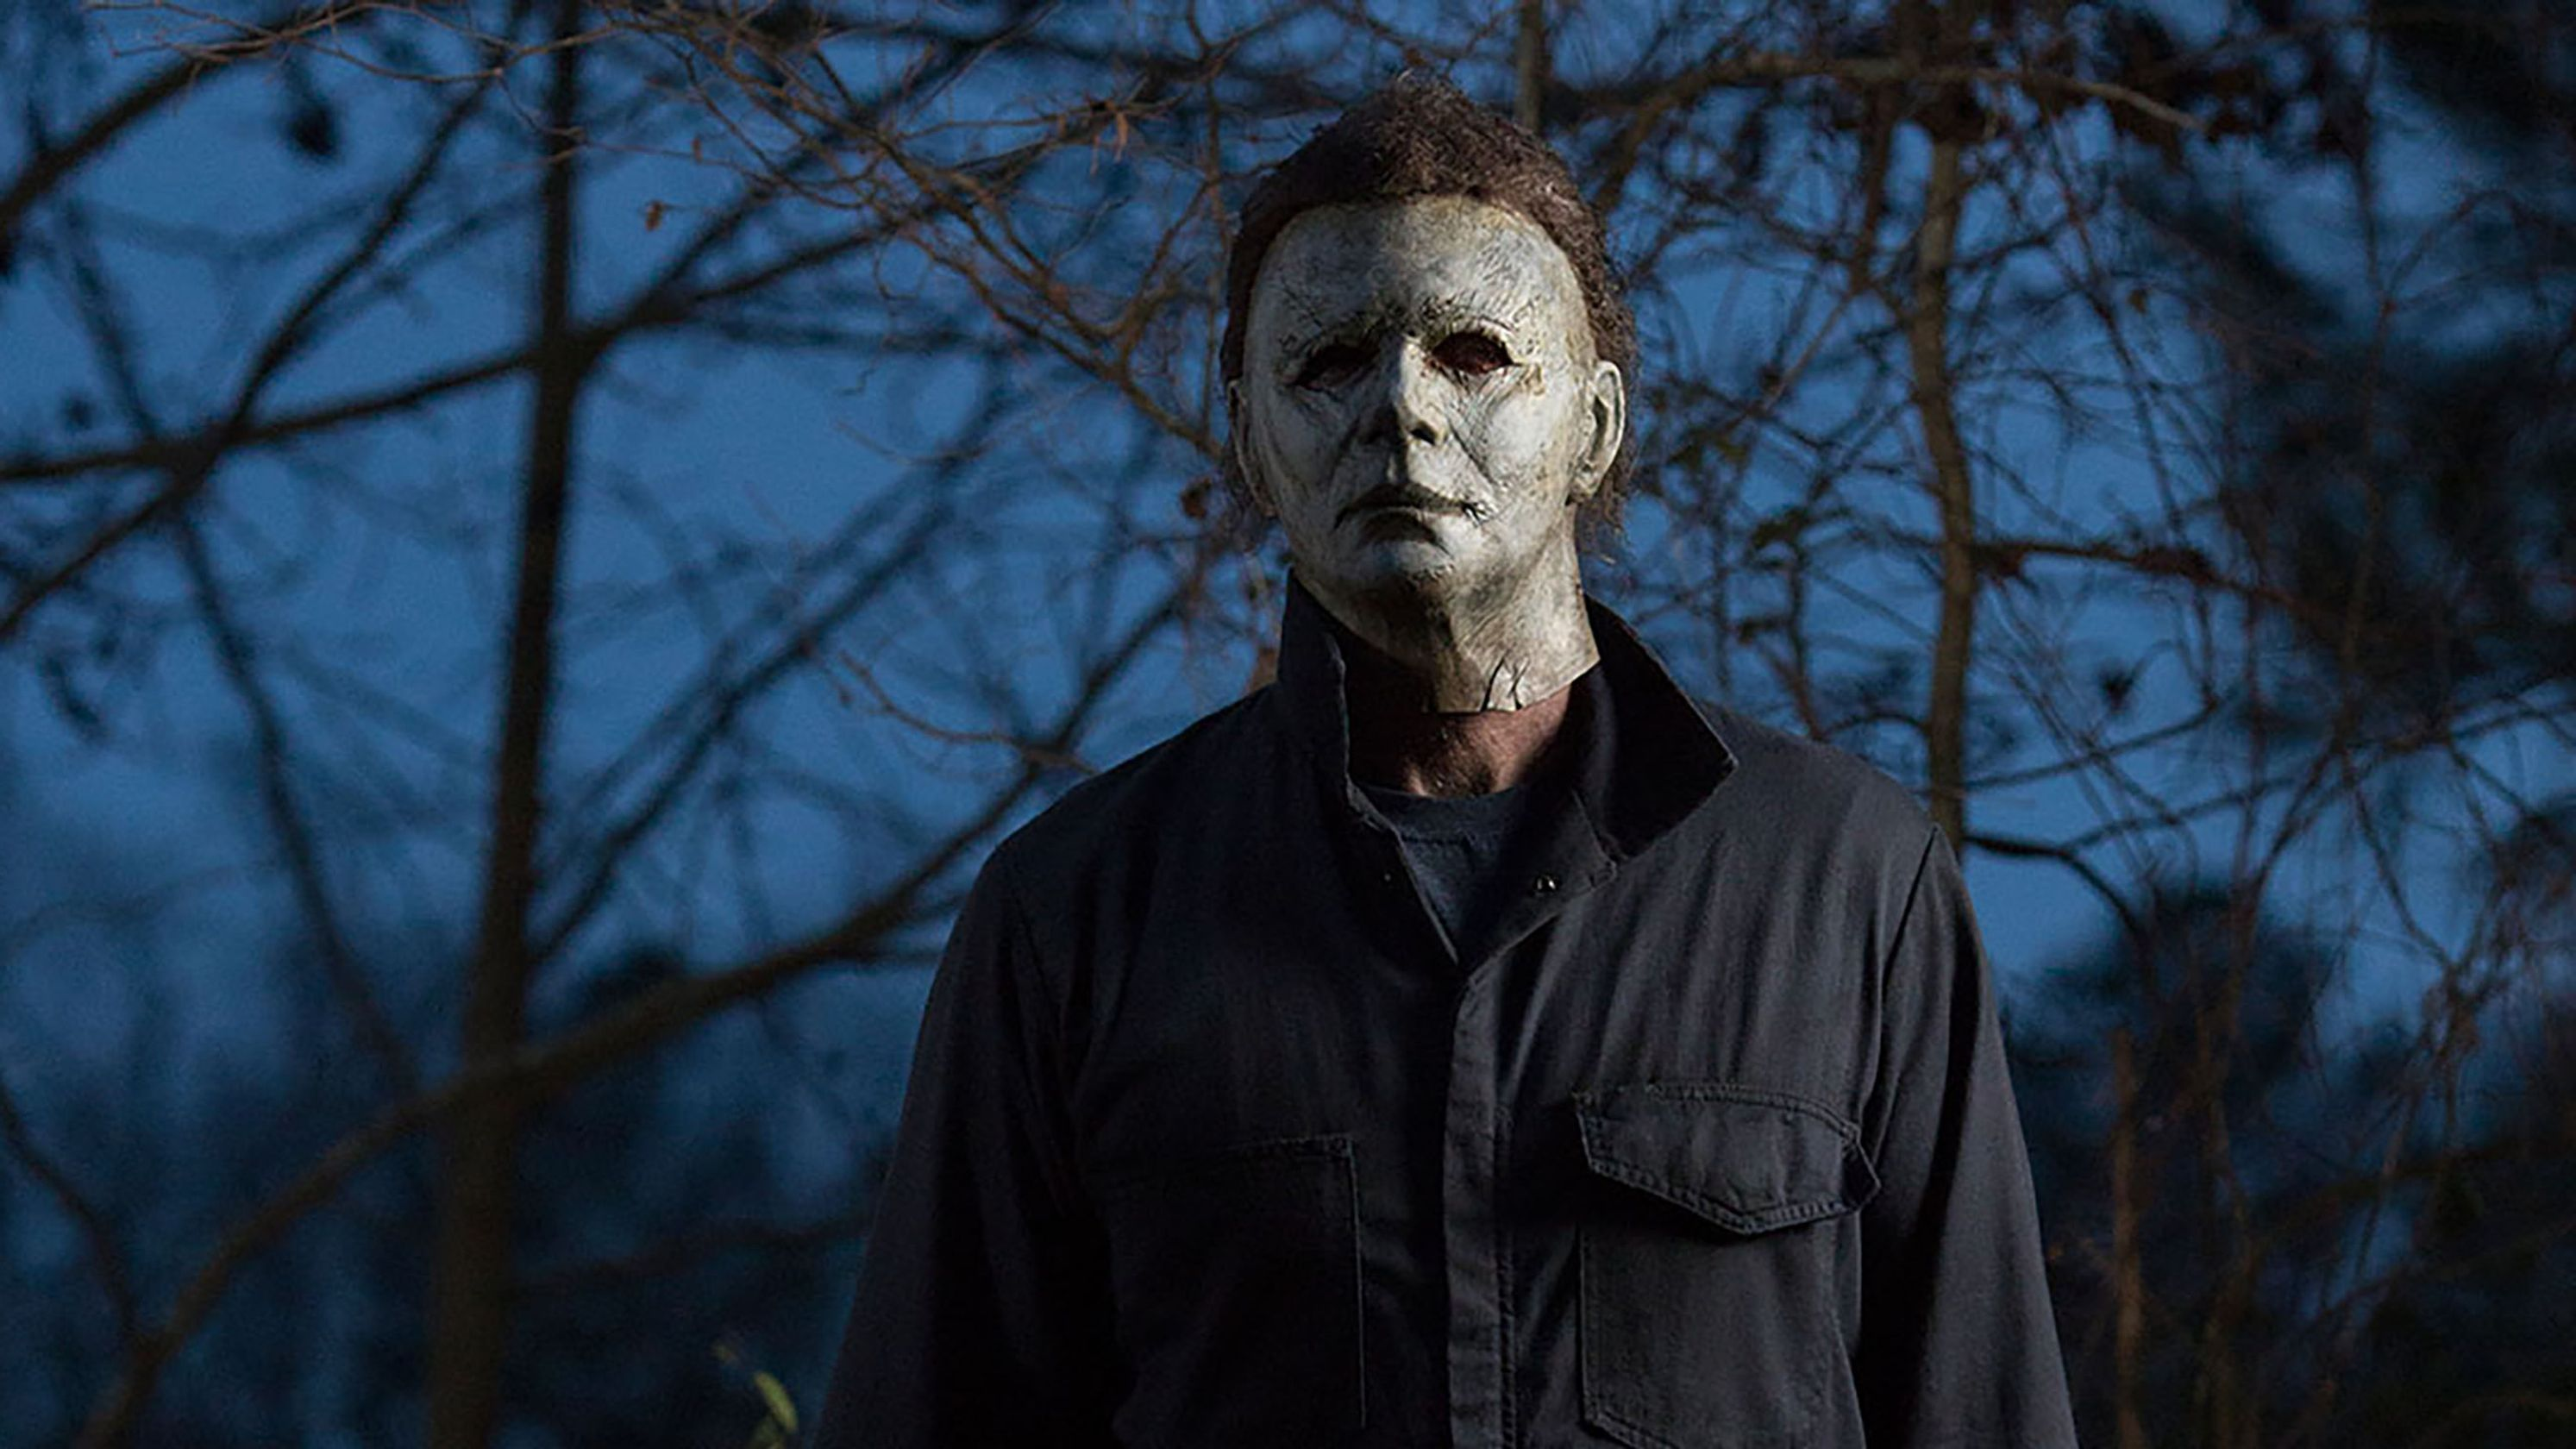 the actor playing 'halloween' murderer michael myers was coached in